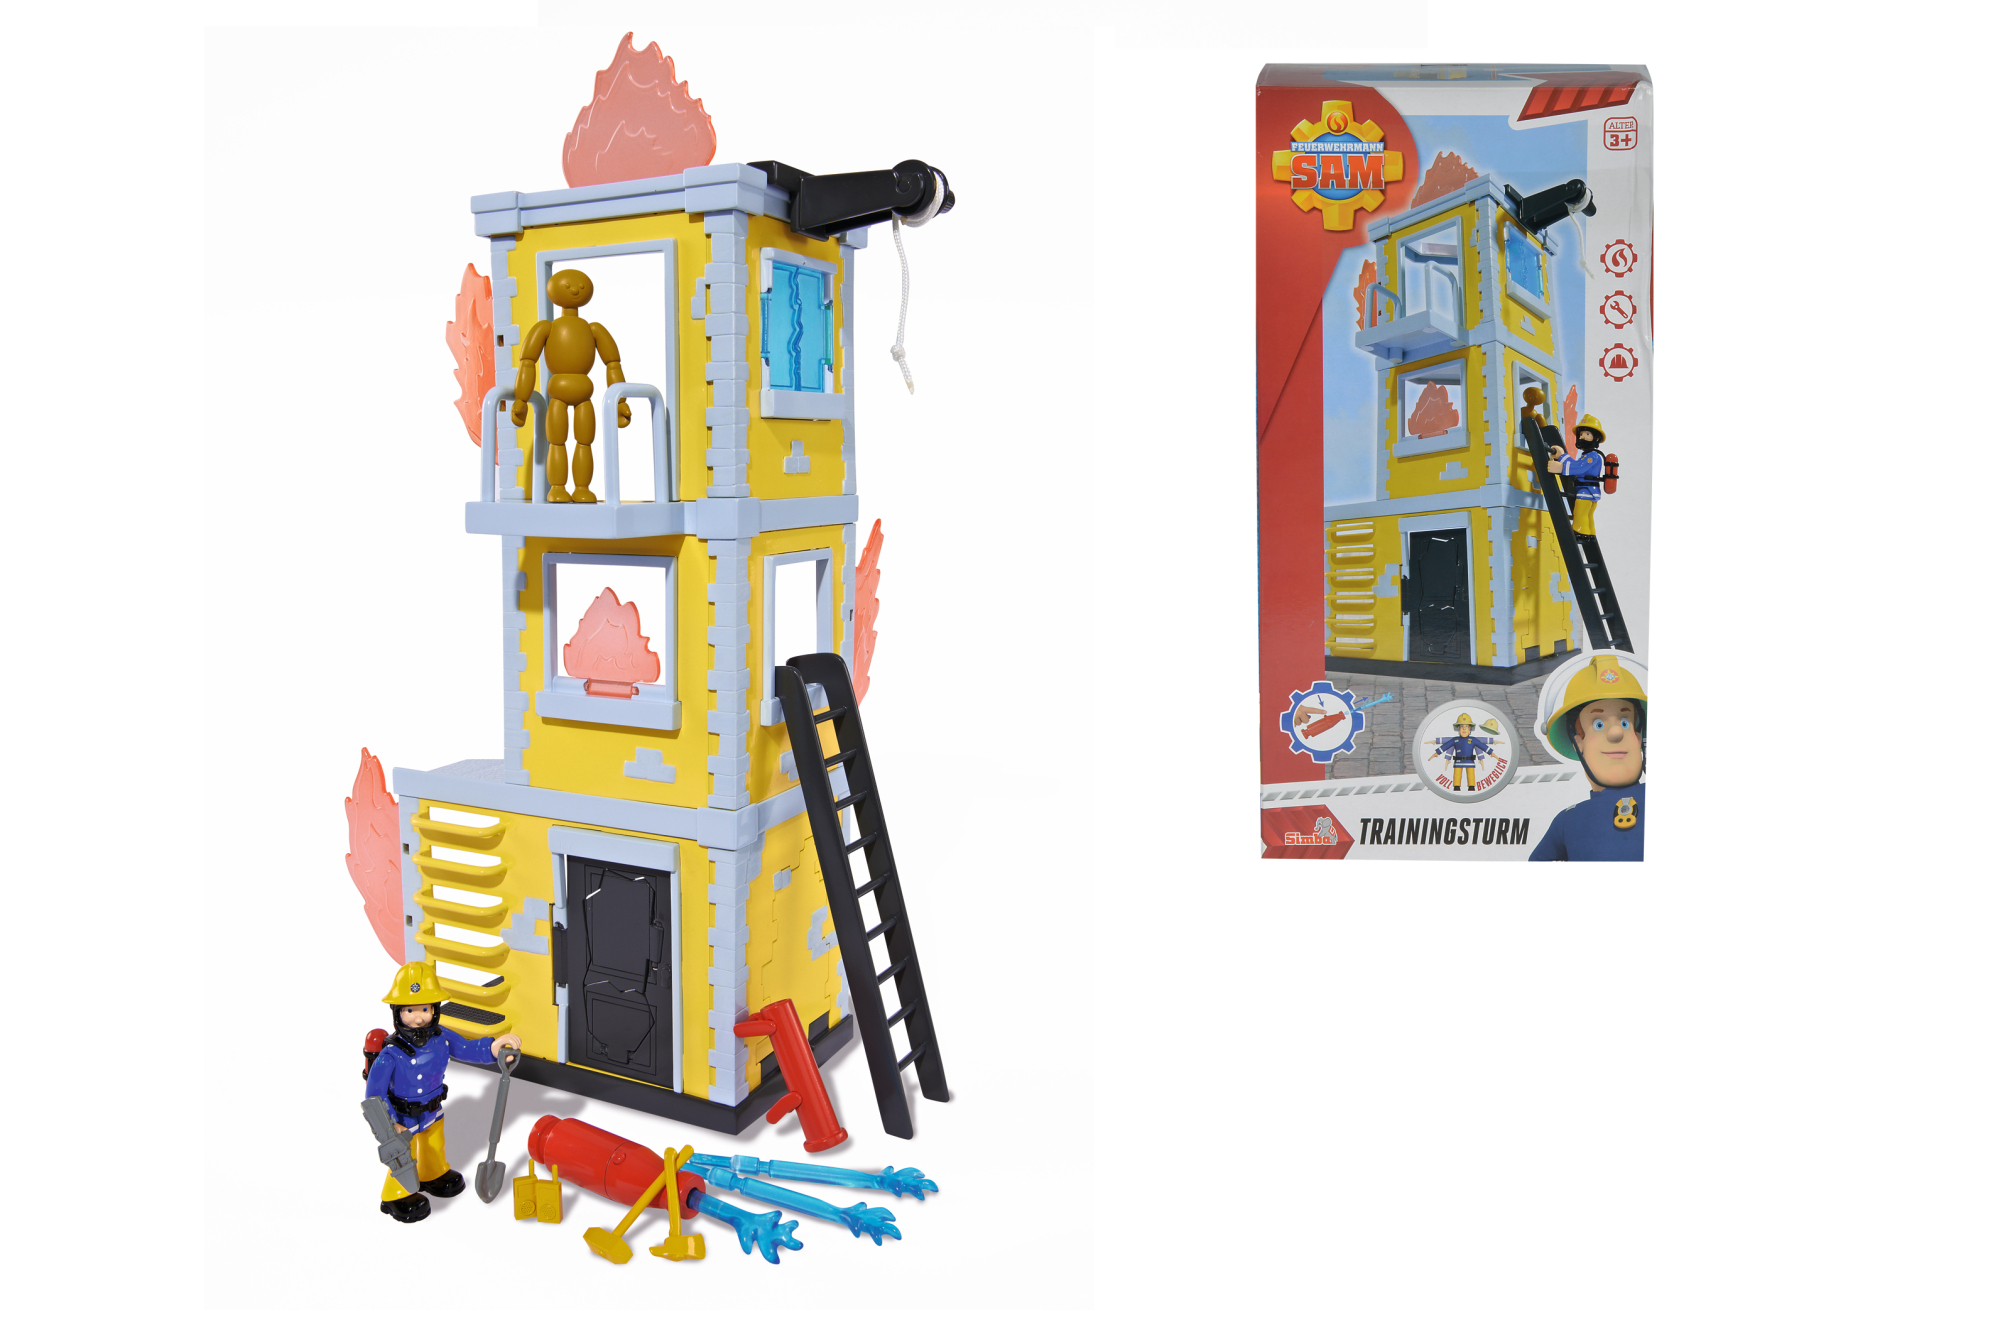 Fireman Sam Großer Trainingsturm